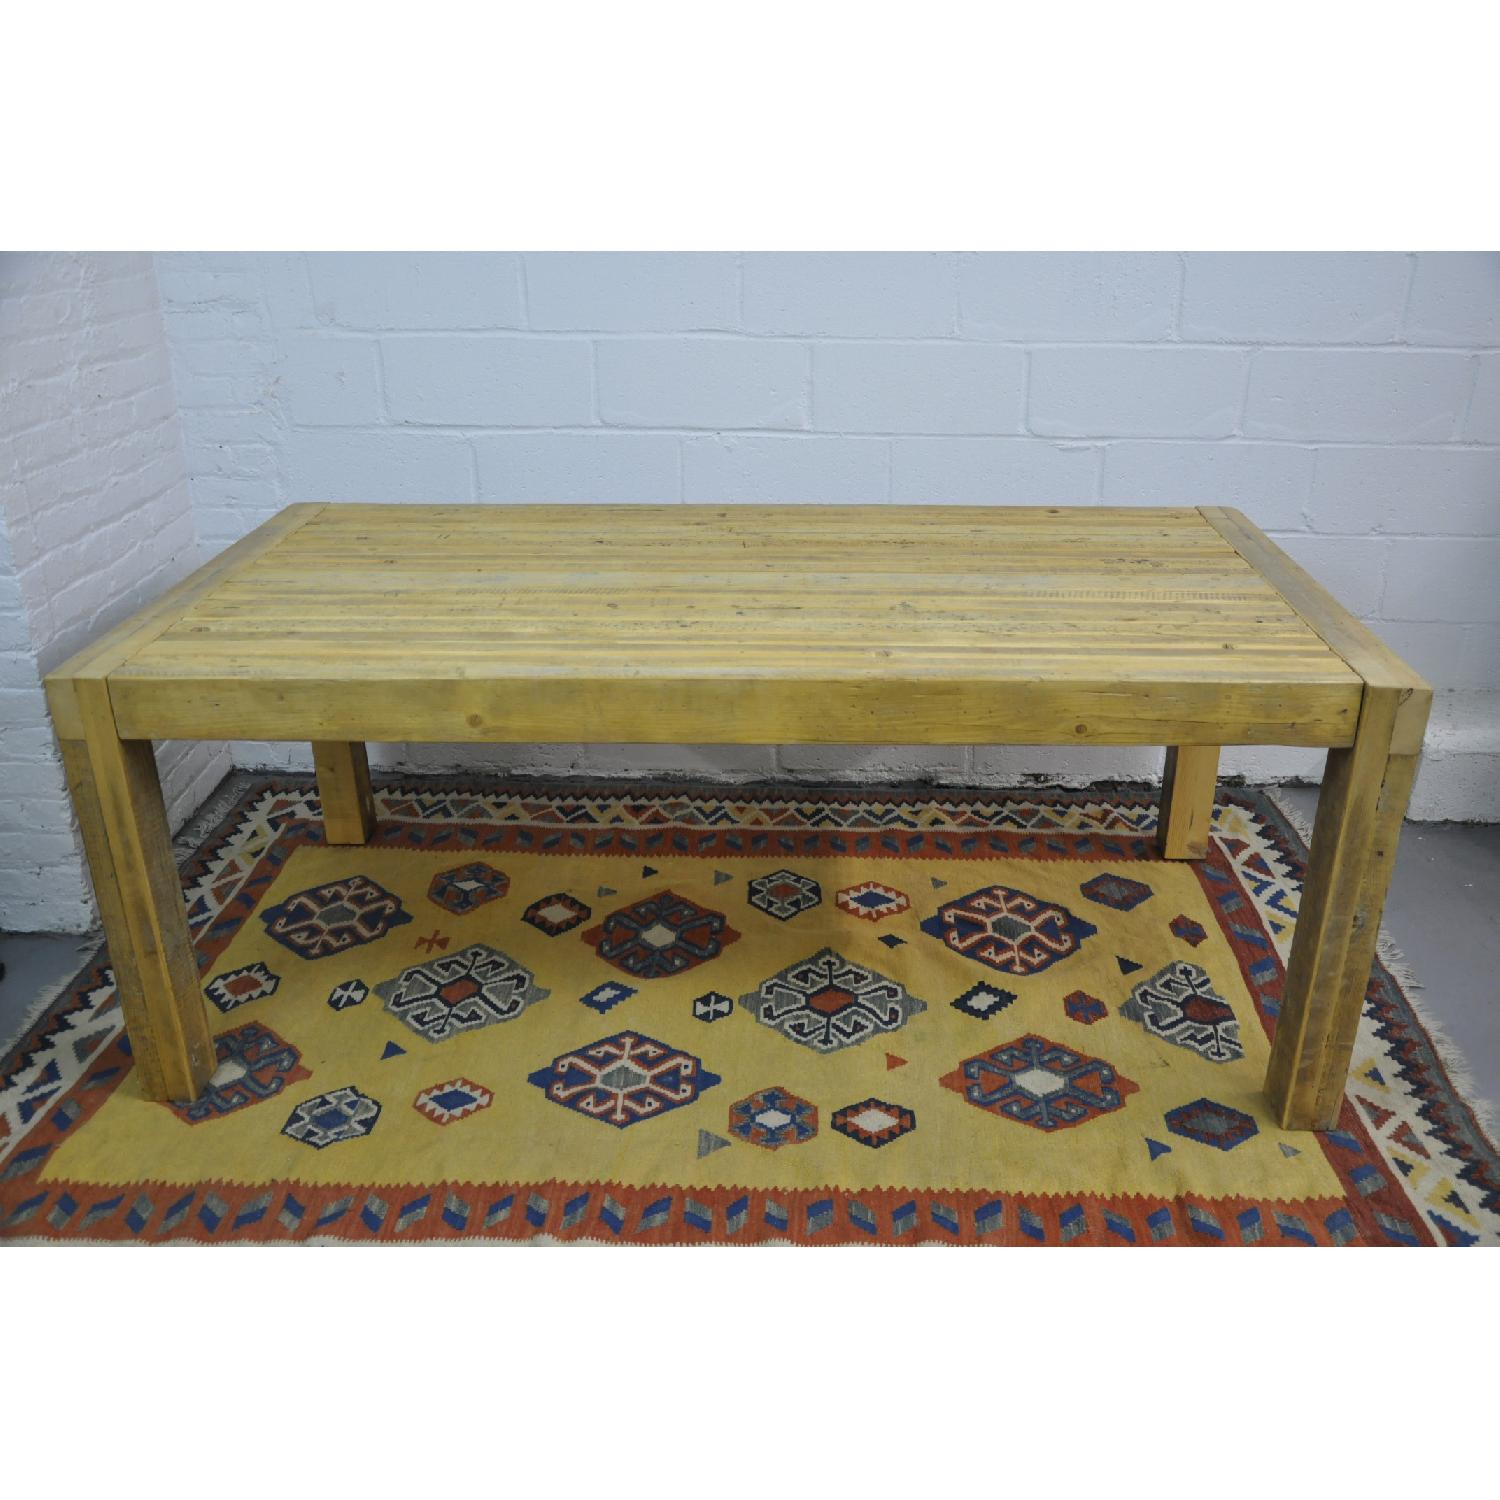 Contemporary Rustic Reclaimed Salvaged Wood Dining Table-0